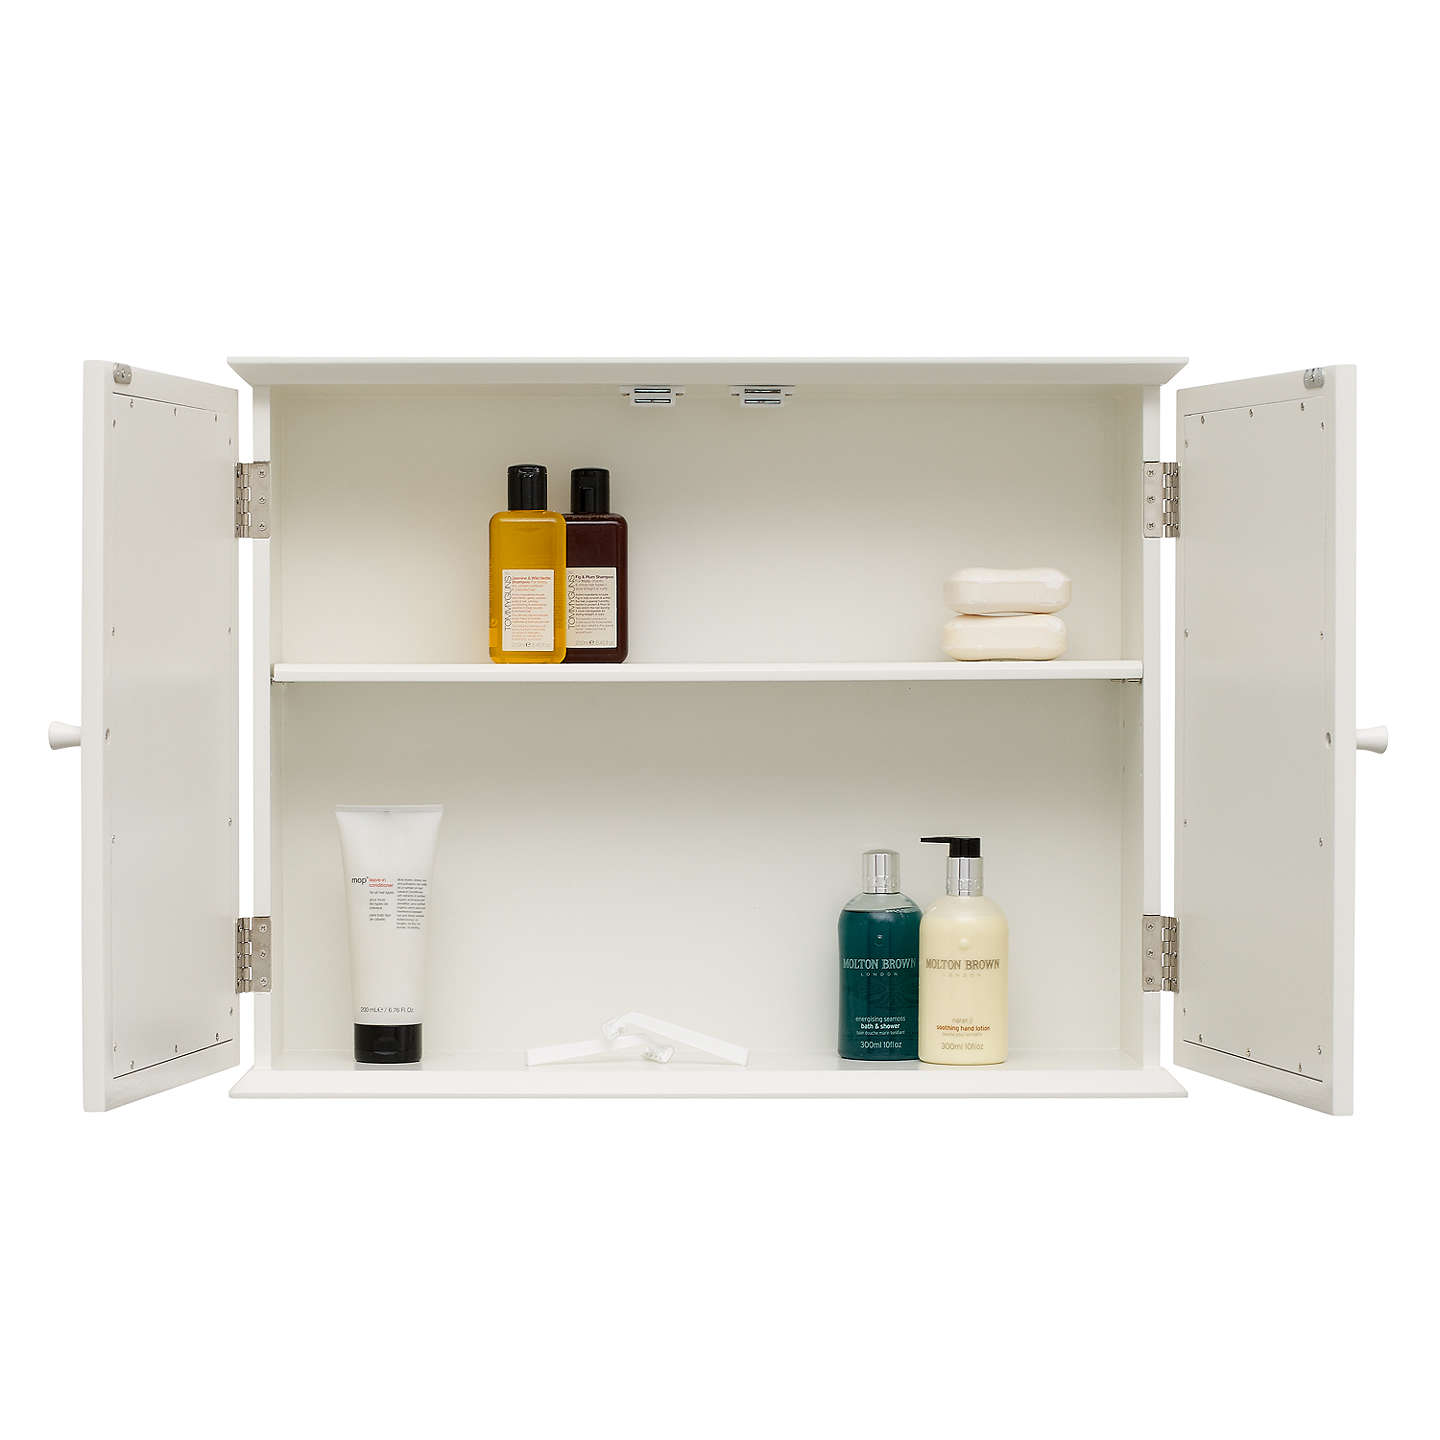 Free Standing Kitchen Cabinets John Lewis: John Lewis St Ives Double Mirrored Bathroom Cabinet At